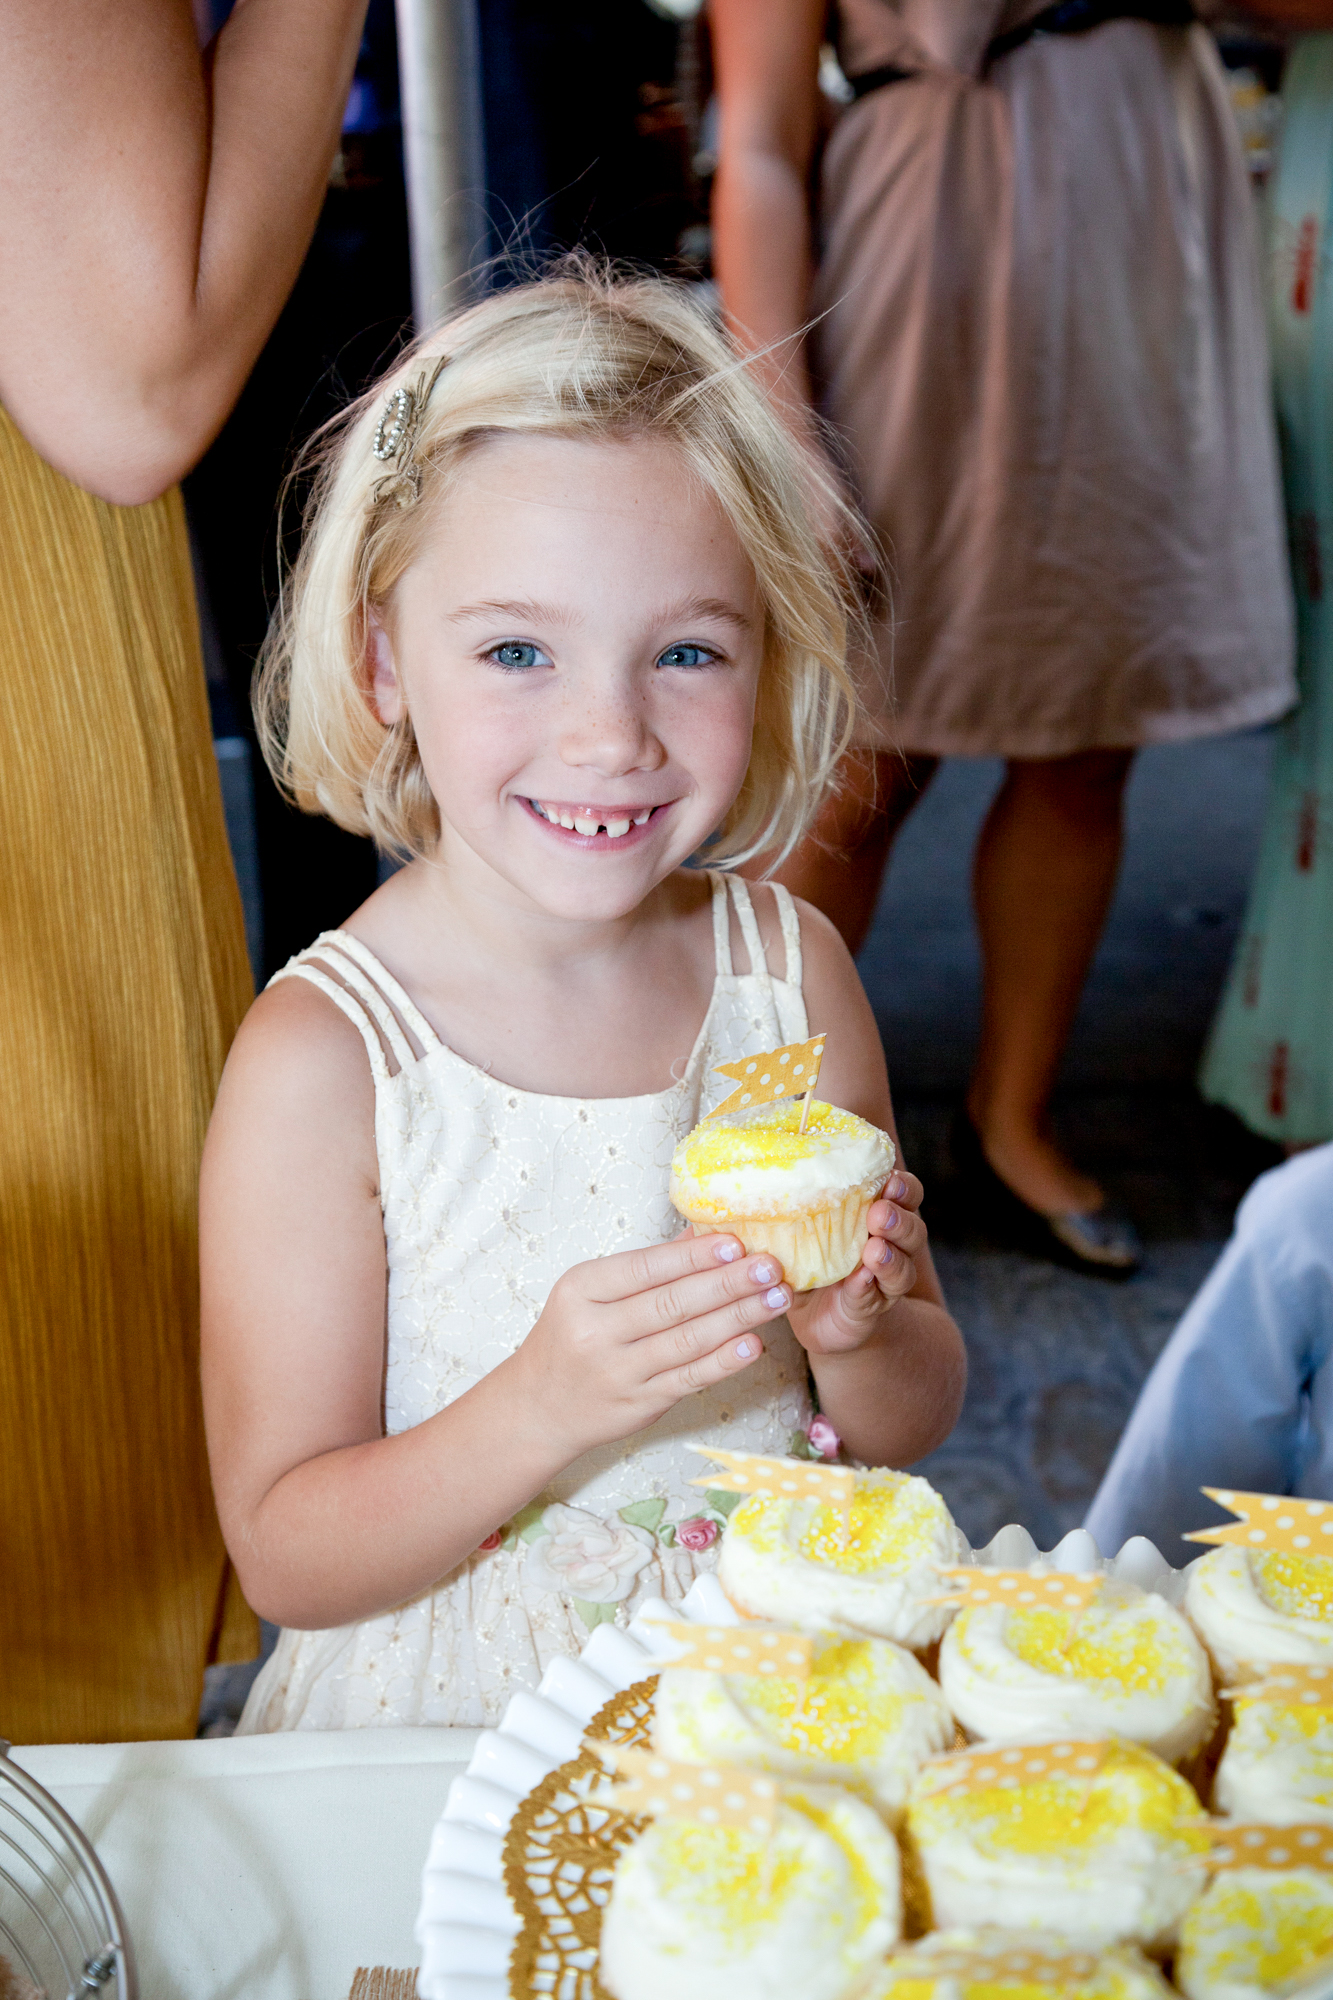 136_CarlyGaebe_SteadfastStudio_WeddingPhotography_NewYork_Brooklyn_CarollGardens_Frankies457Spuntino_Dessert_Cupcake_Flowergirl_Kid_Yellow.jpg